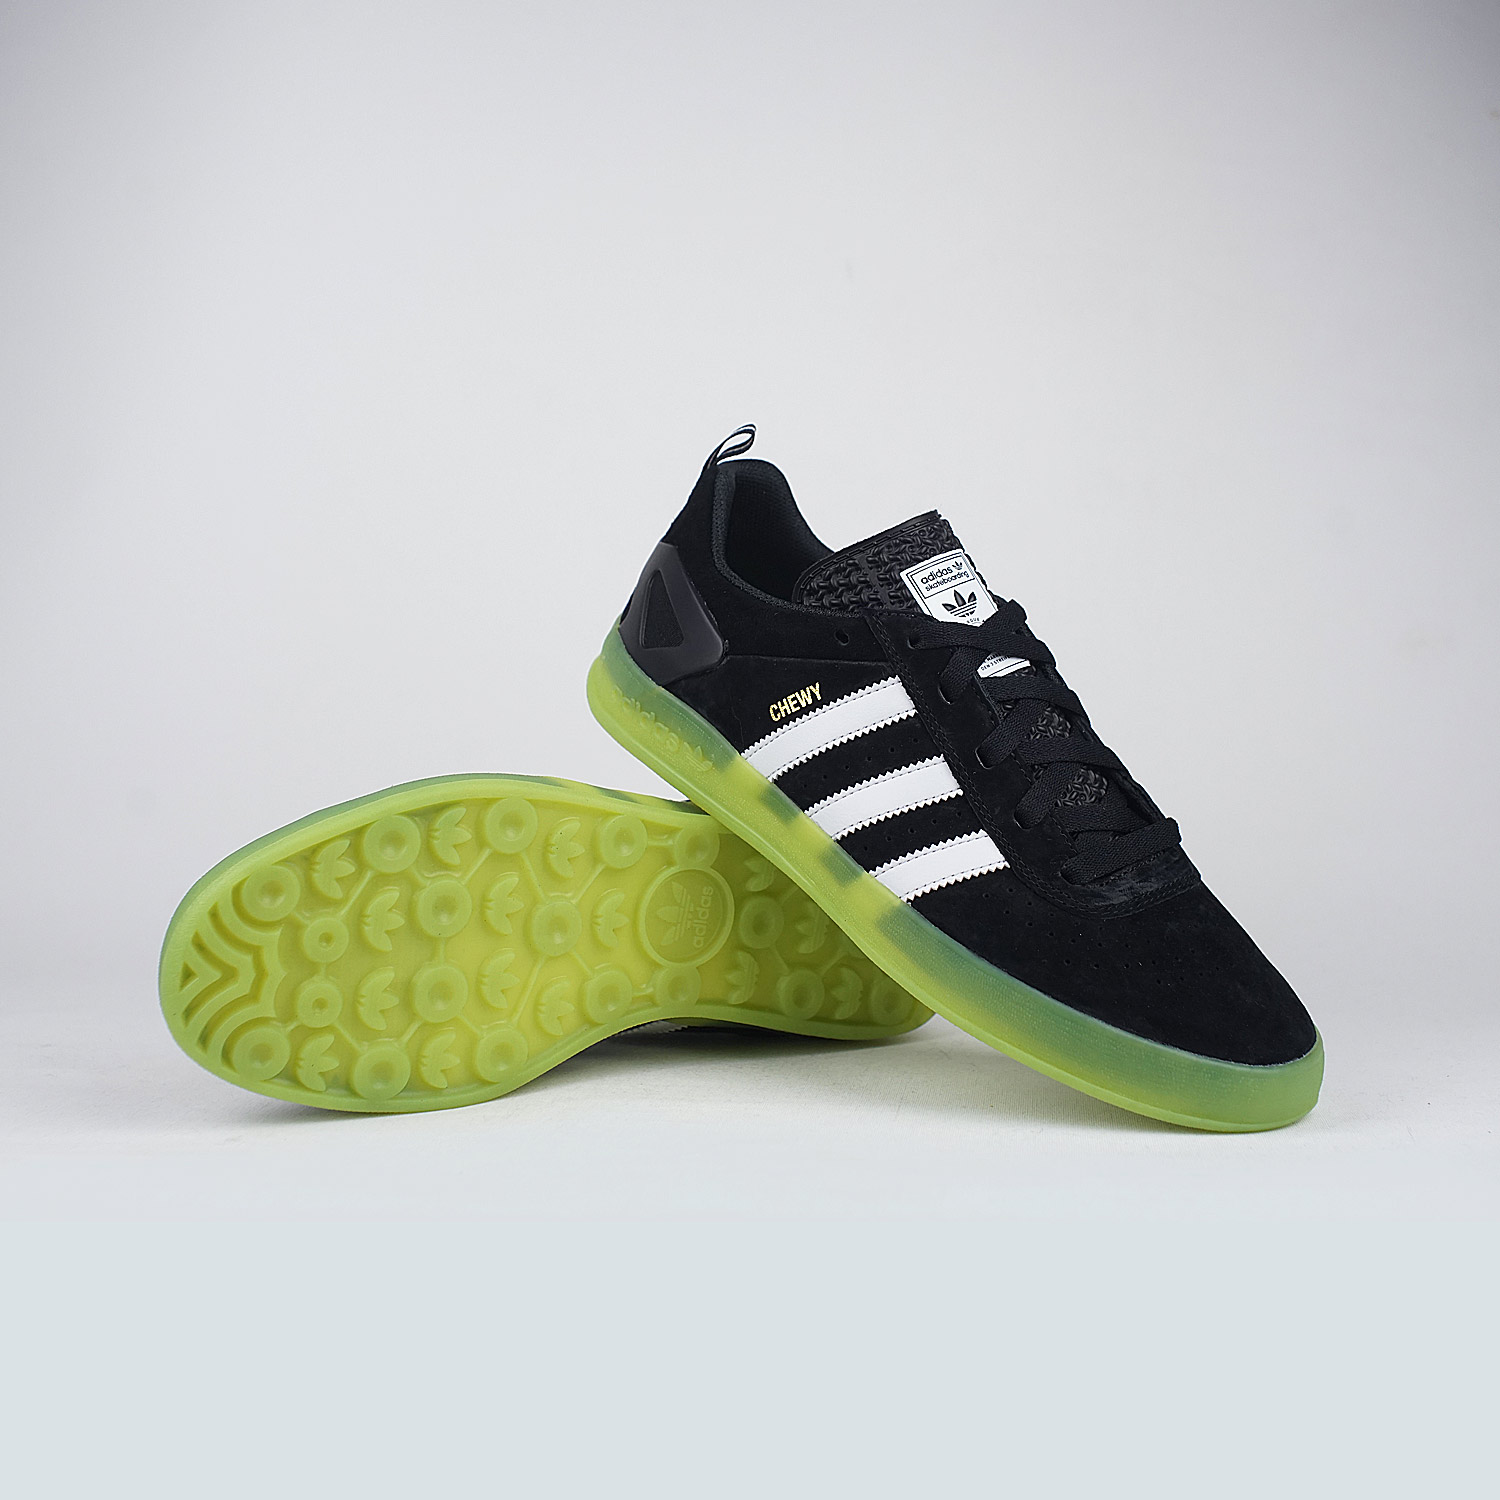 new arrival 8e5d1 74b71 Adidas-Palace-Pro-Chewy-Black-Green ...